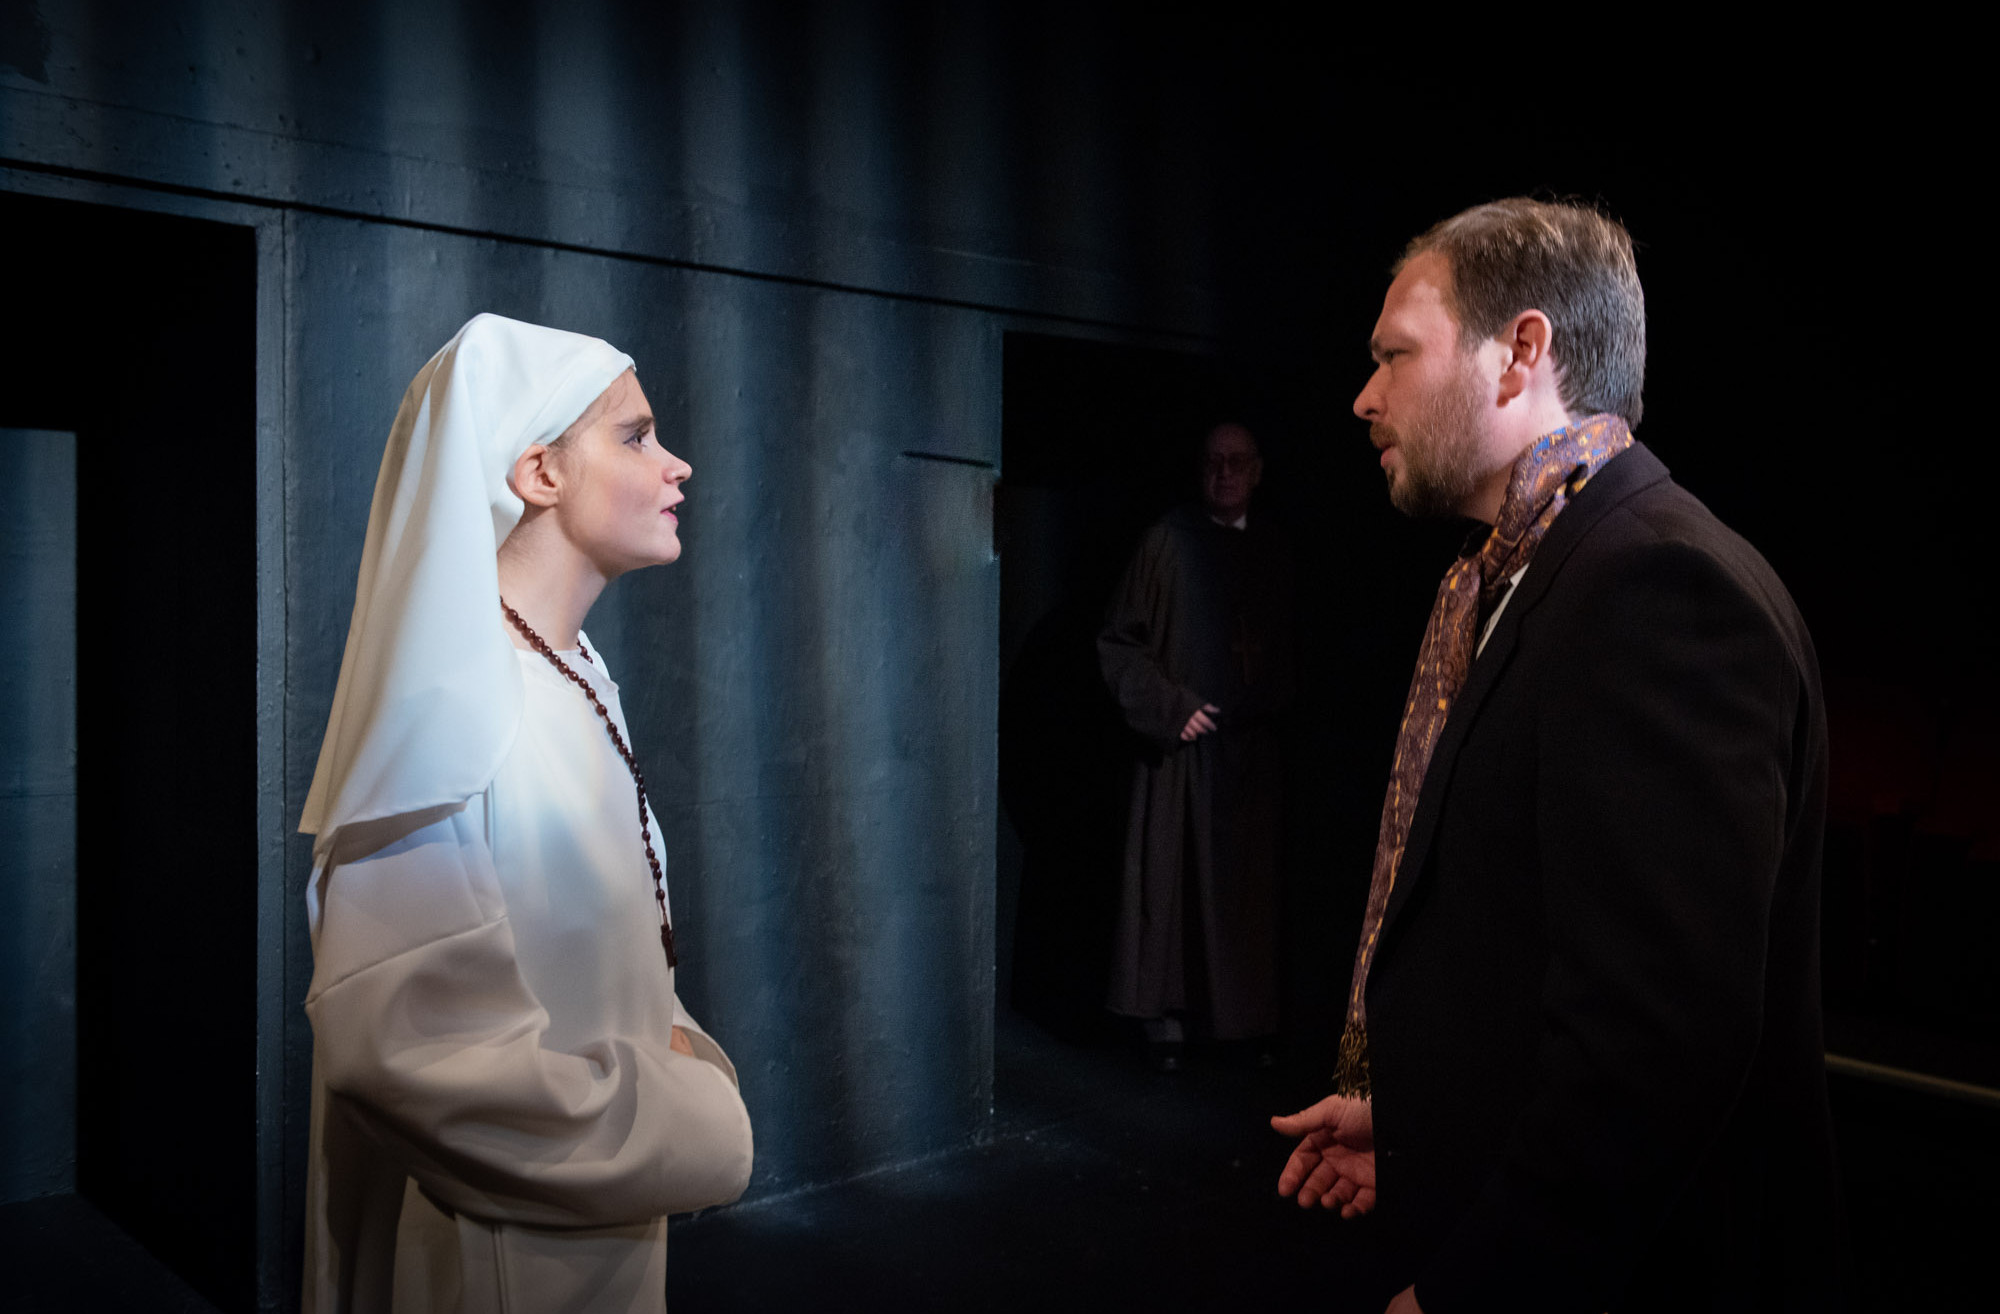 Bolton Little Theatre stage rehearsals of William Shakespeare play Measure for Measure featuring Catherine Cropper as Isabella and Alfred Howard as Luciano